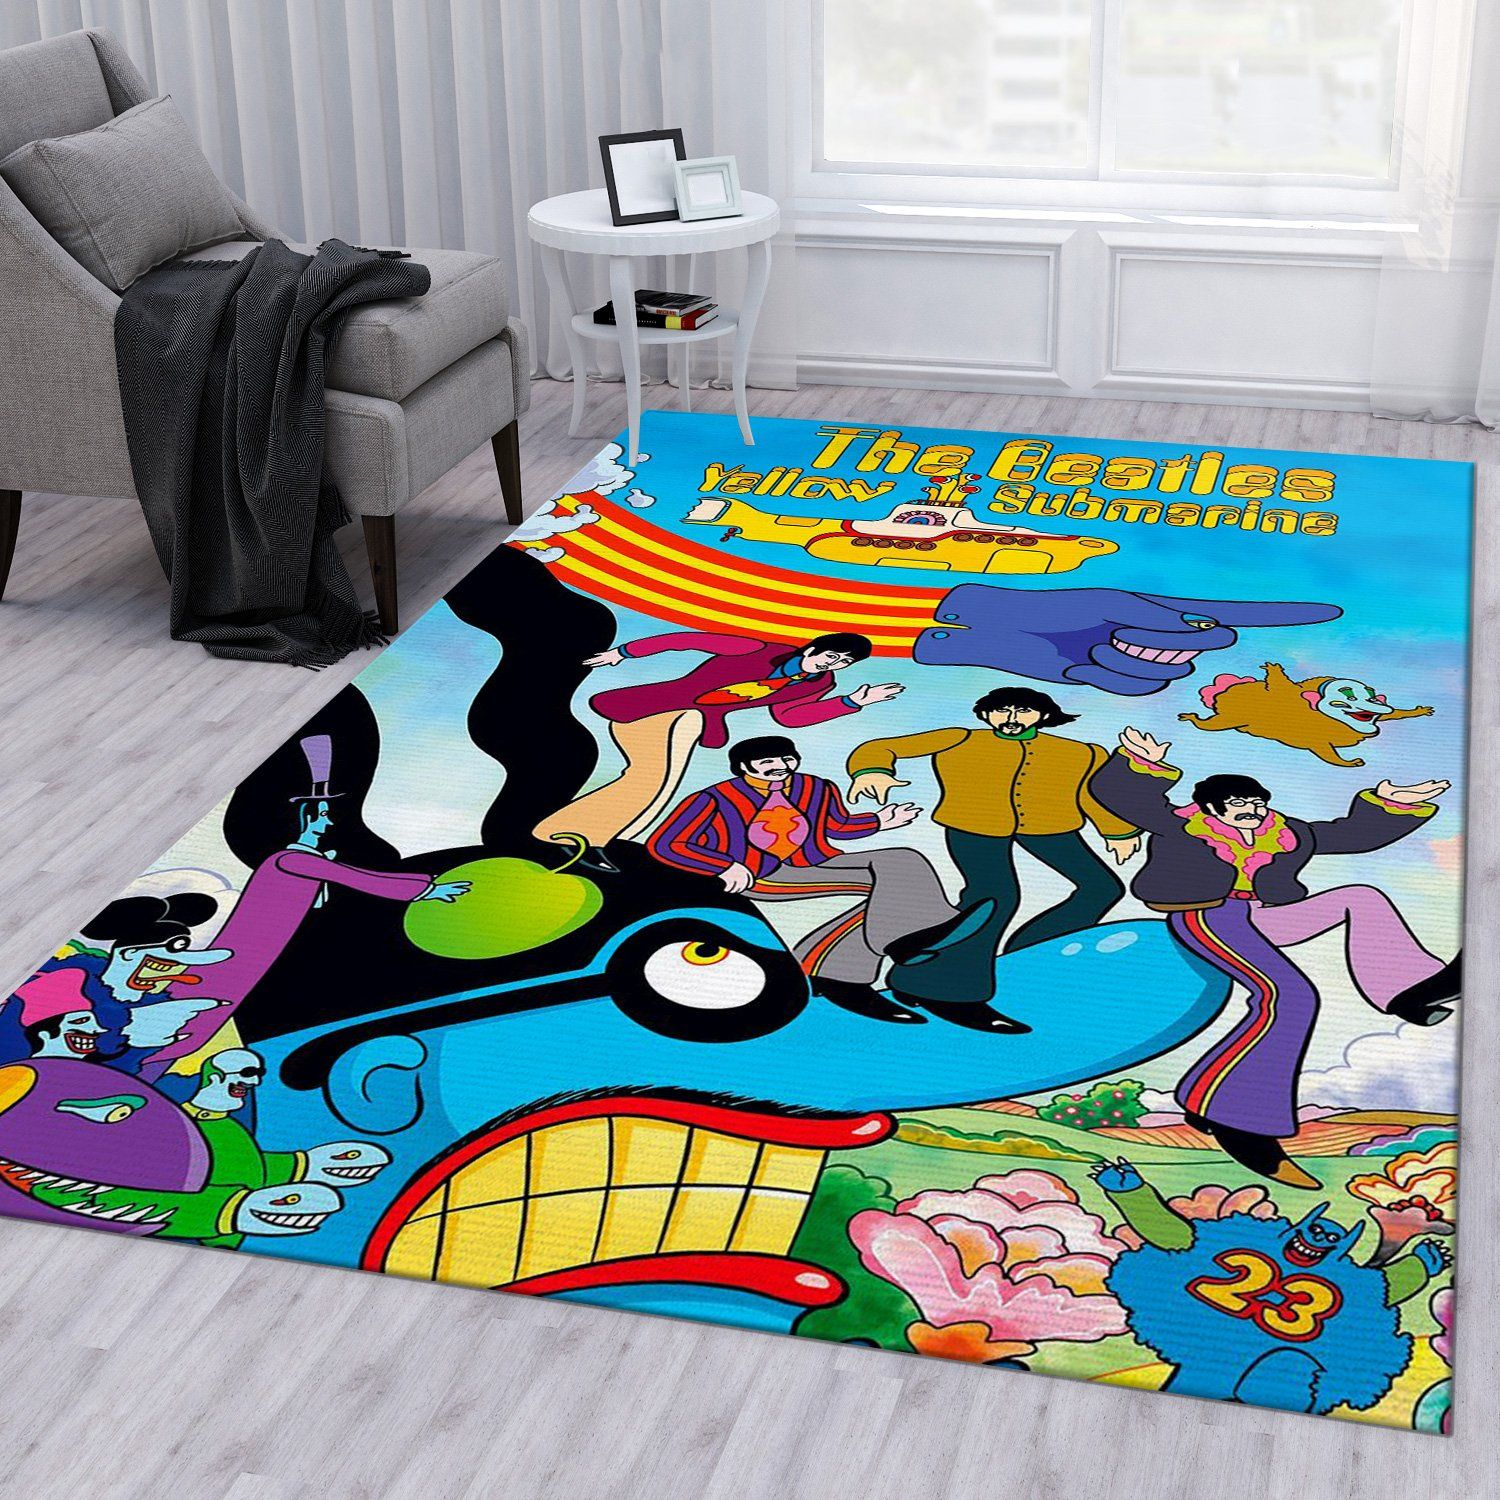 The Beatles Cartoon Rug